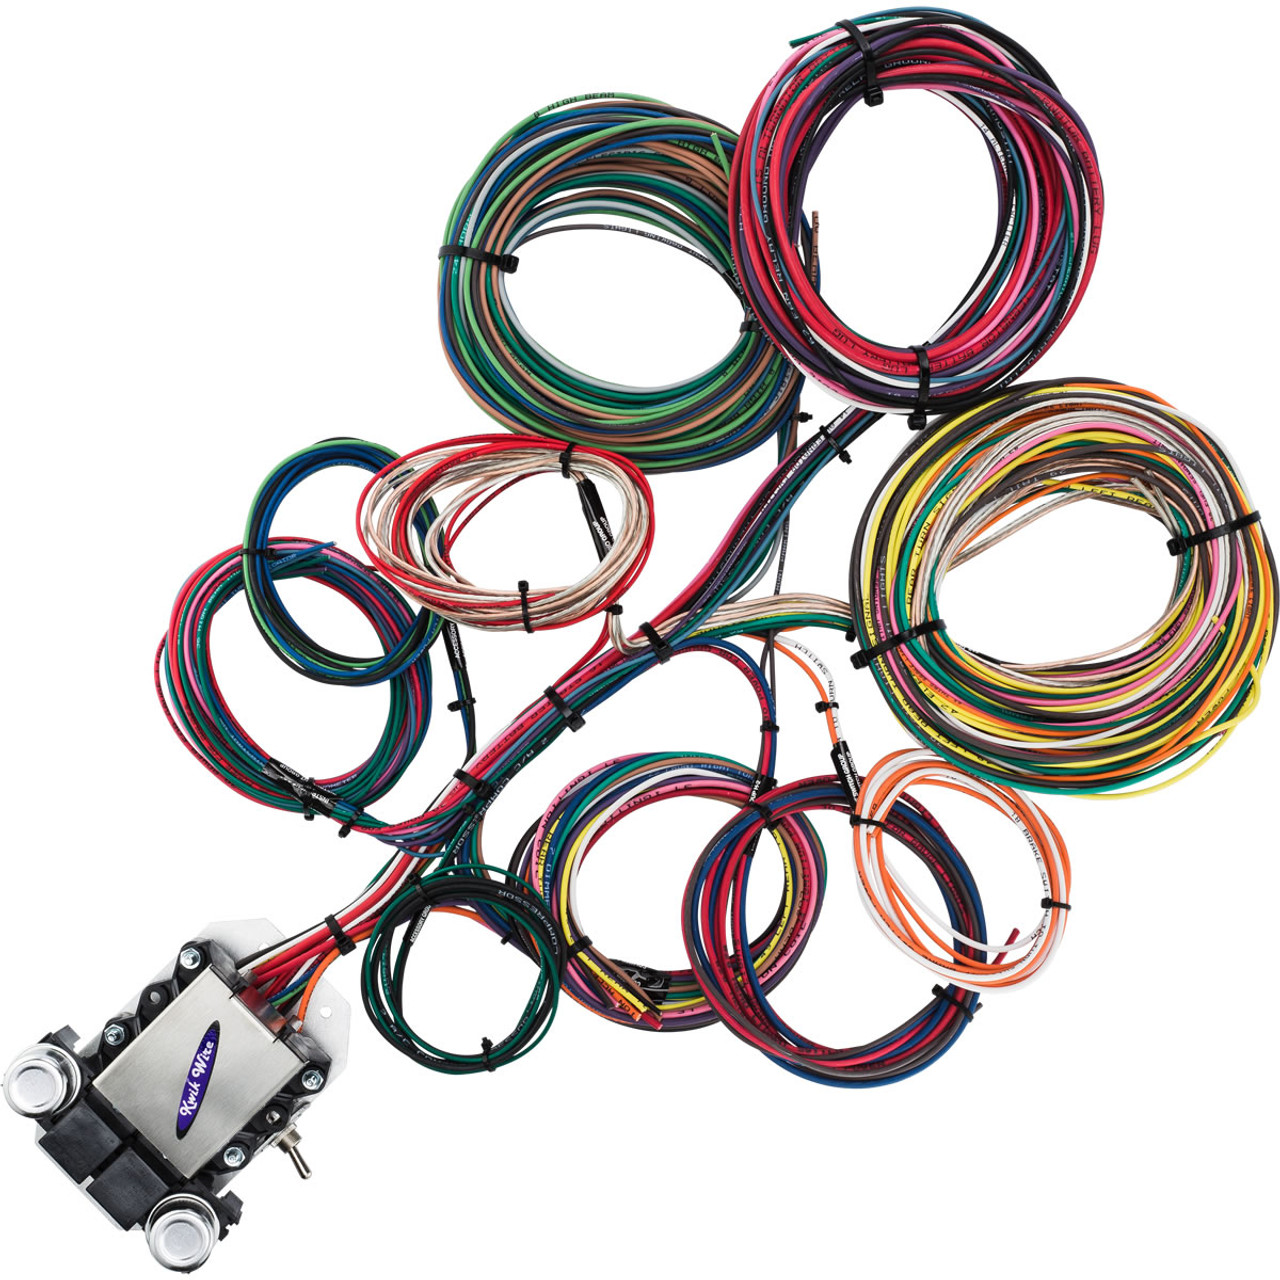 Can Ford Wiring Harness Modern Design Of Diagram Street Fighter Enduro Headlight Wire 14 Circuit Kwikwire Com Electrify Your Ride Rh Tractor Car Kits